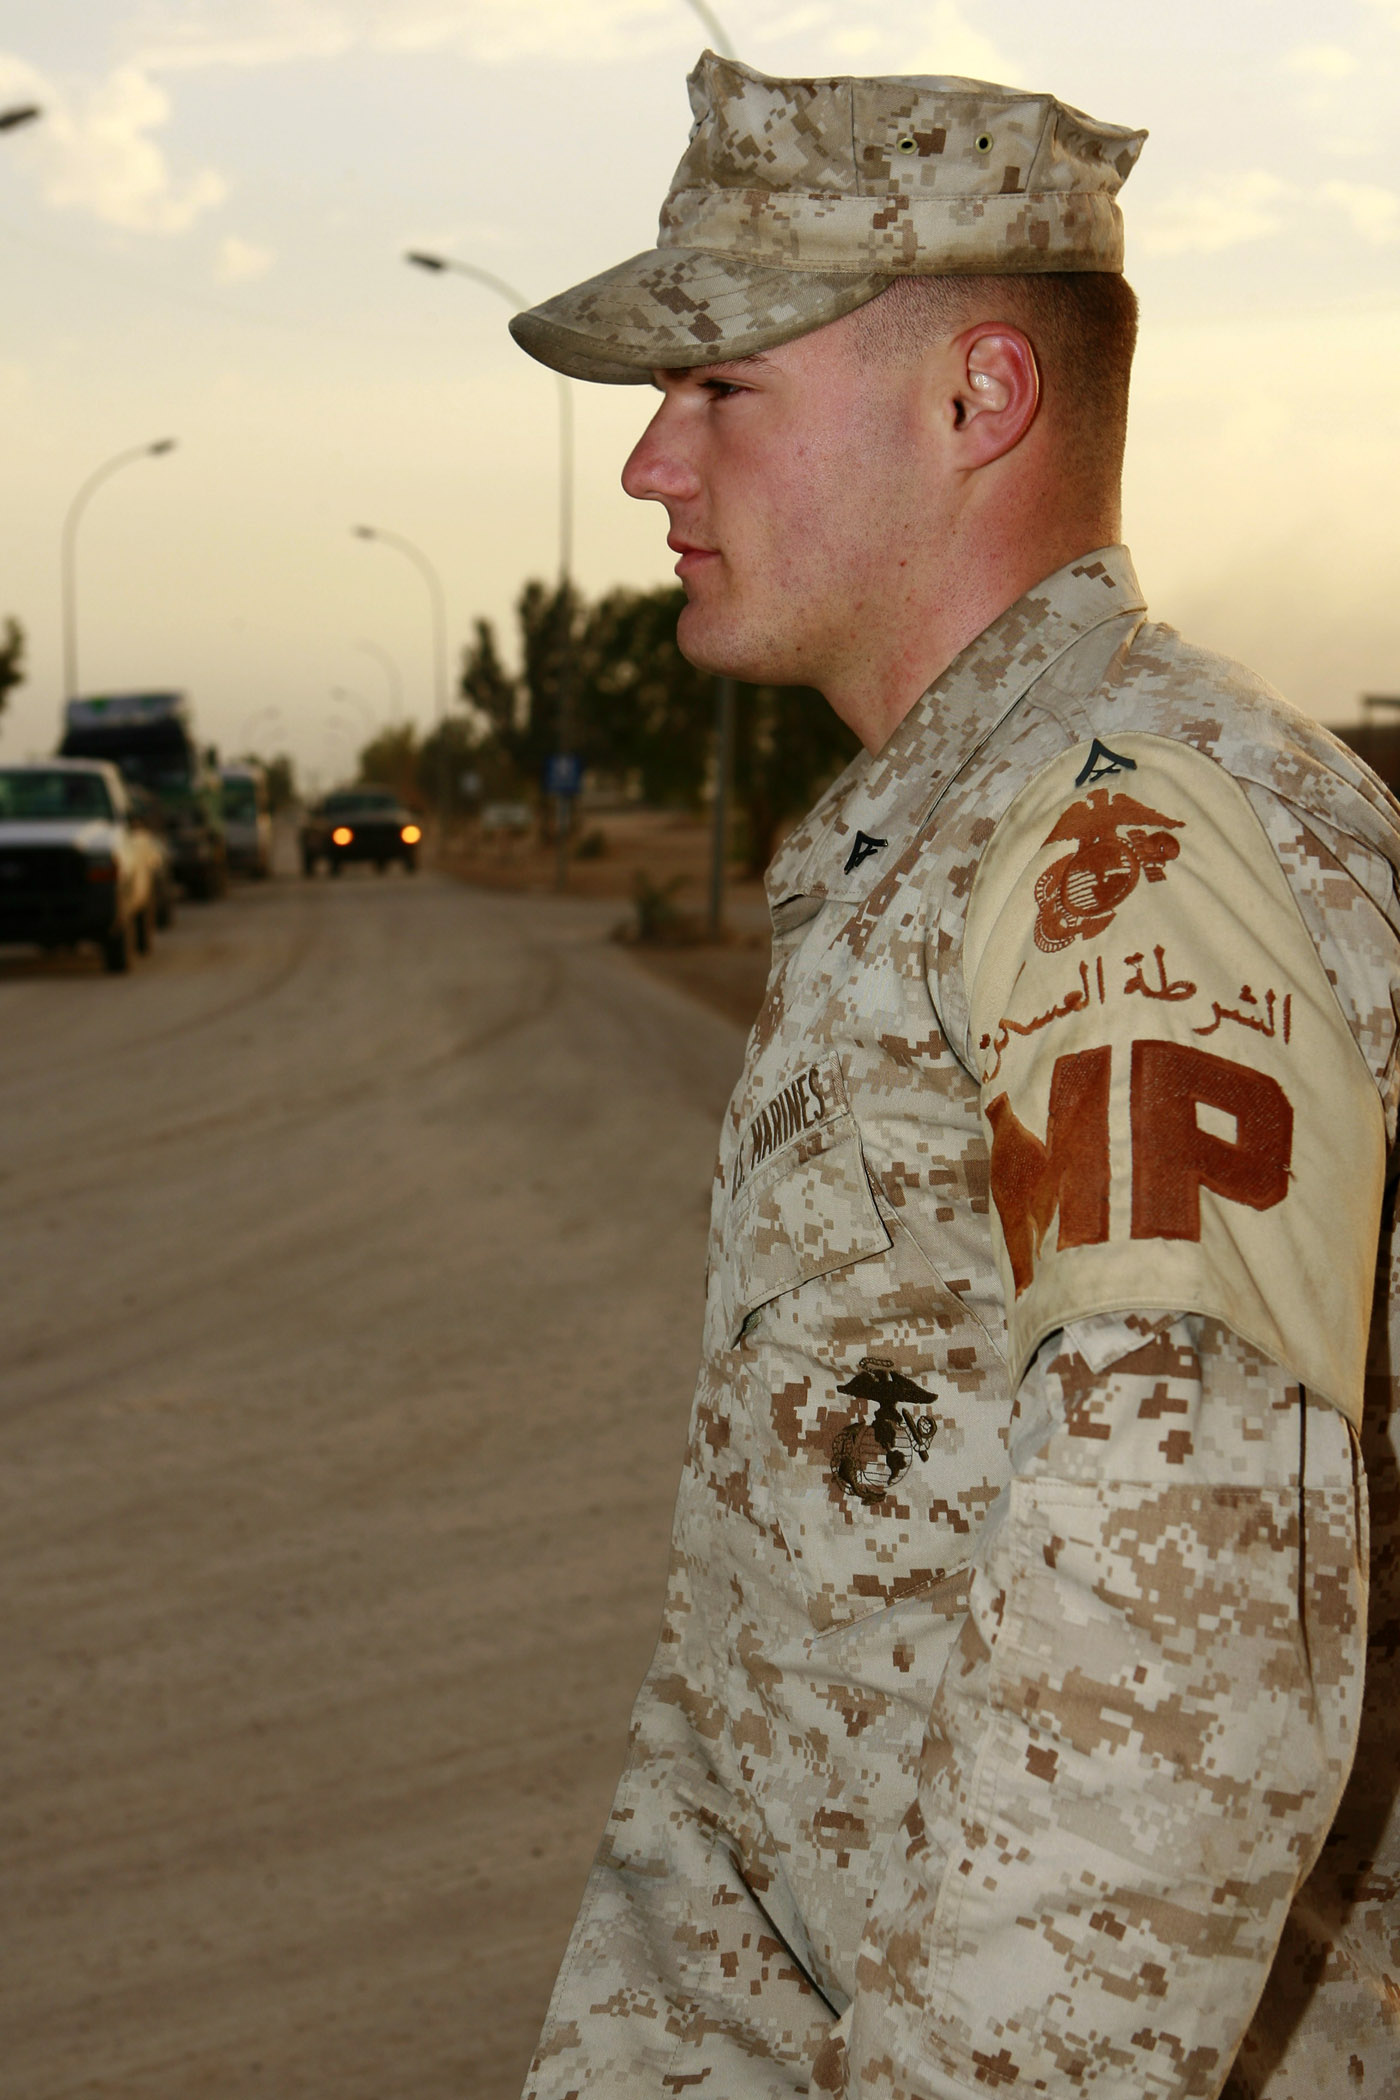 Military police keep safety top priority at Al Asad > 3rd ...